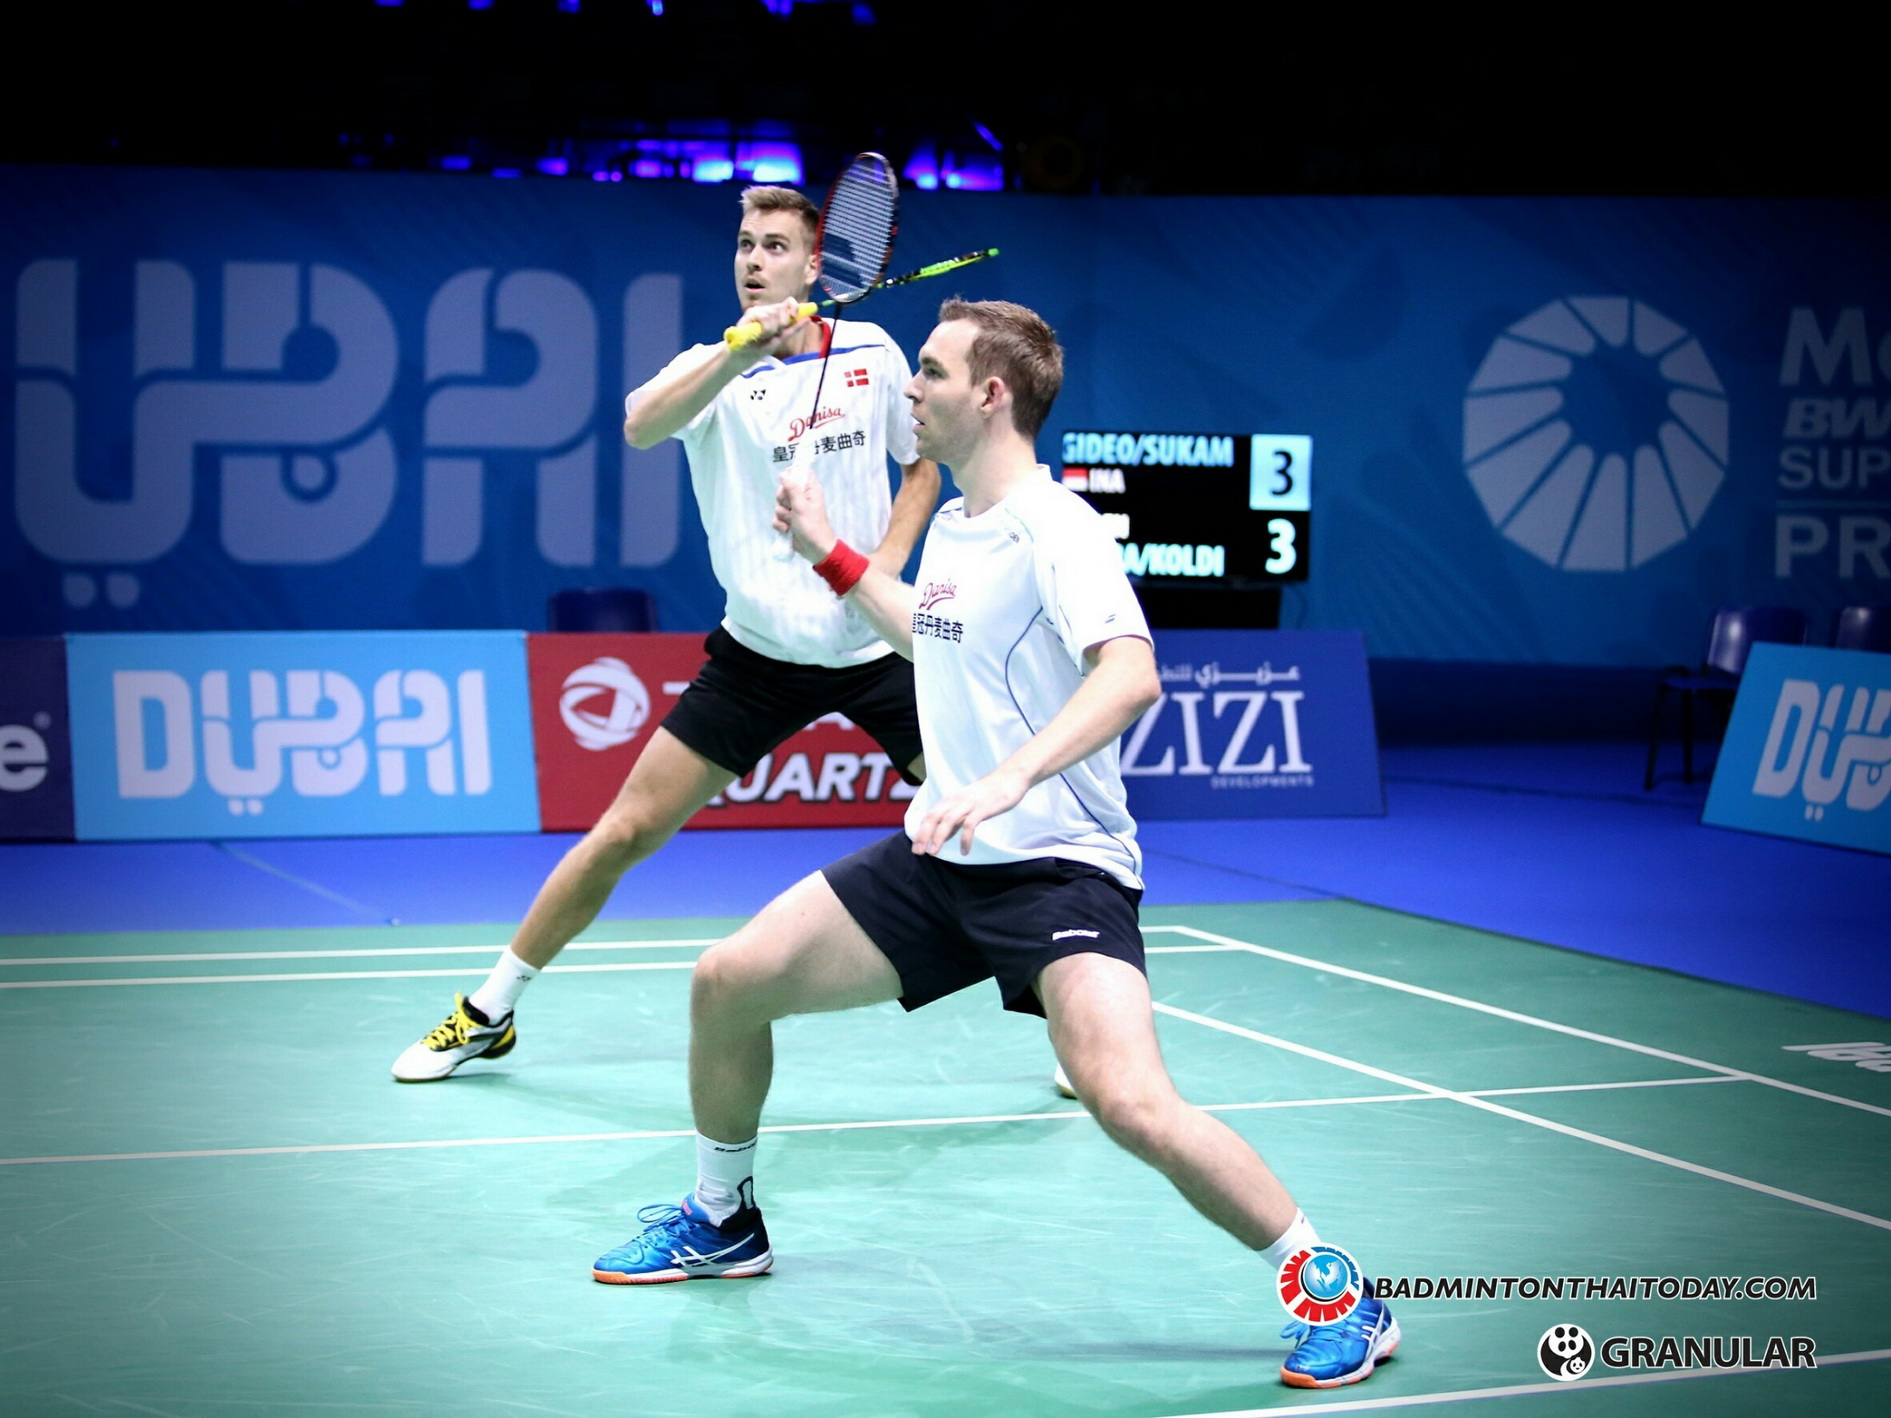 Mads Conrad-Petersen - Mads Pieler Kolding @ Dubai World Superseries Final 2016 รูปภาพกีฬาแบดมินตัน